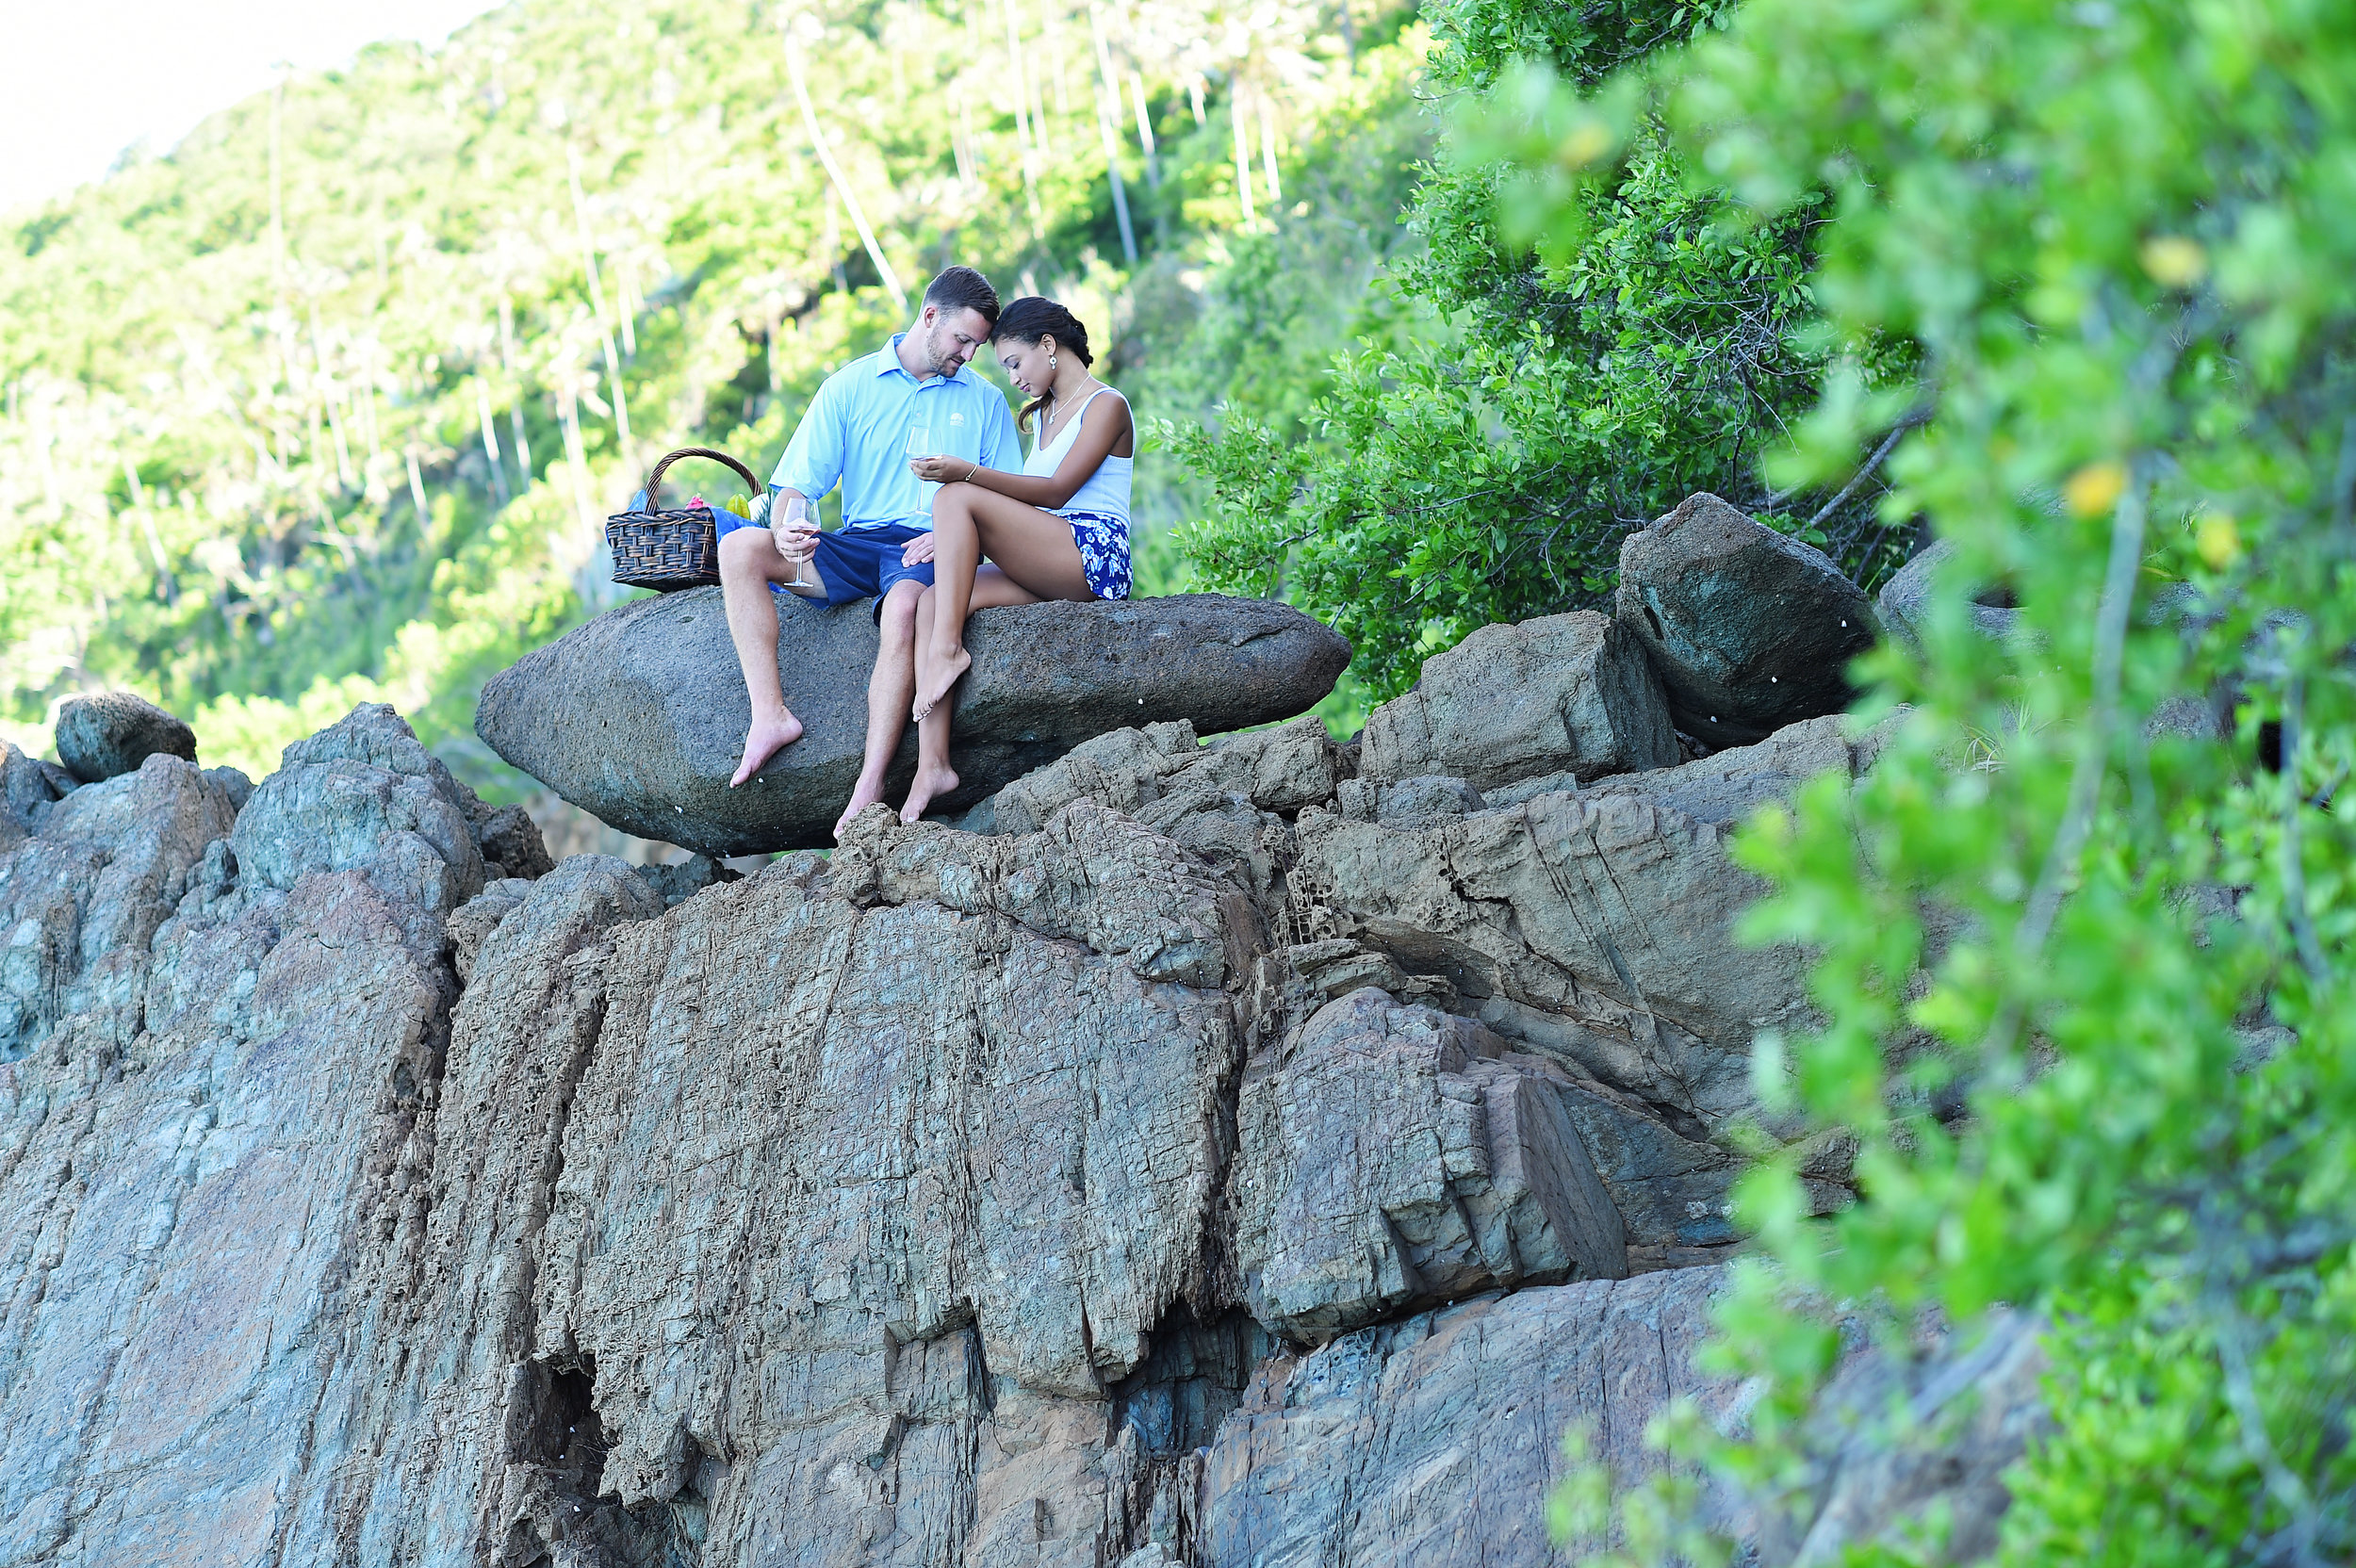 romantic places to propose in the US - Weddings in the Virgin Islands